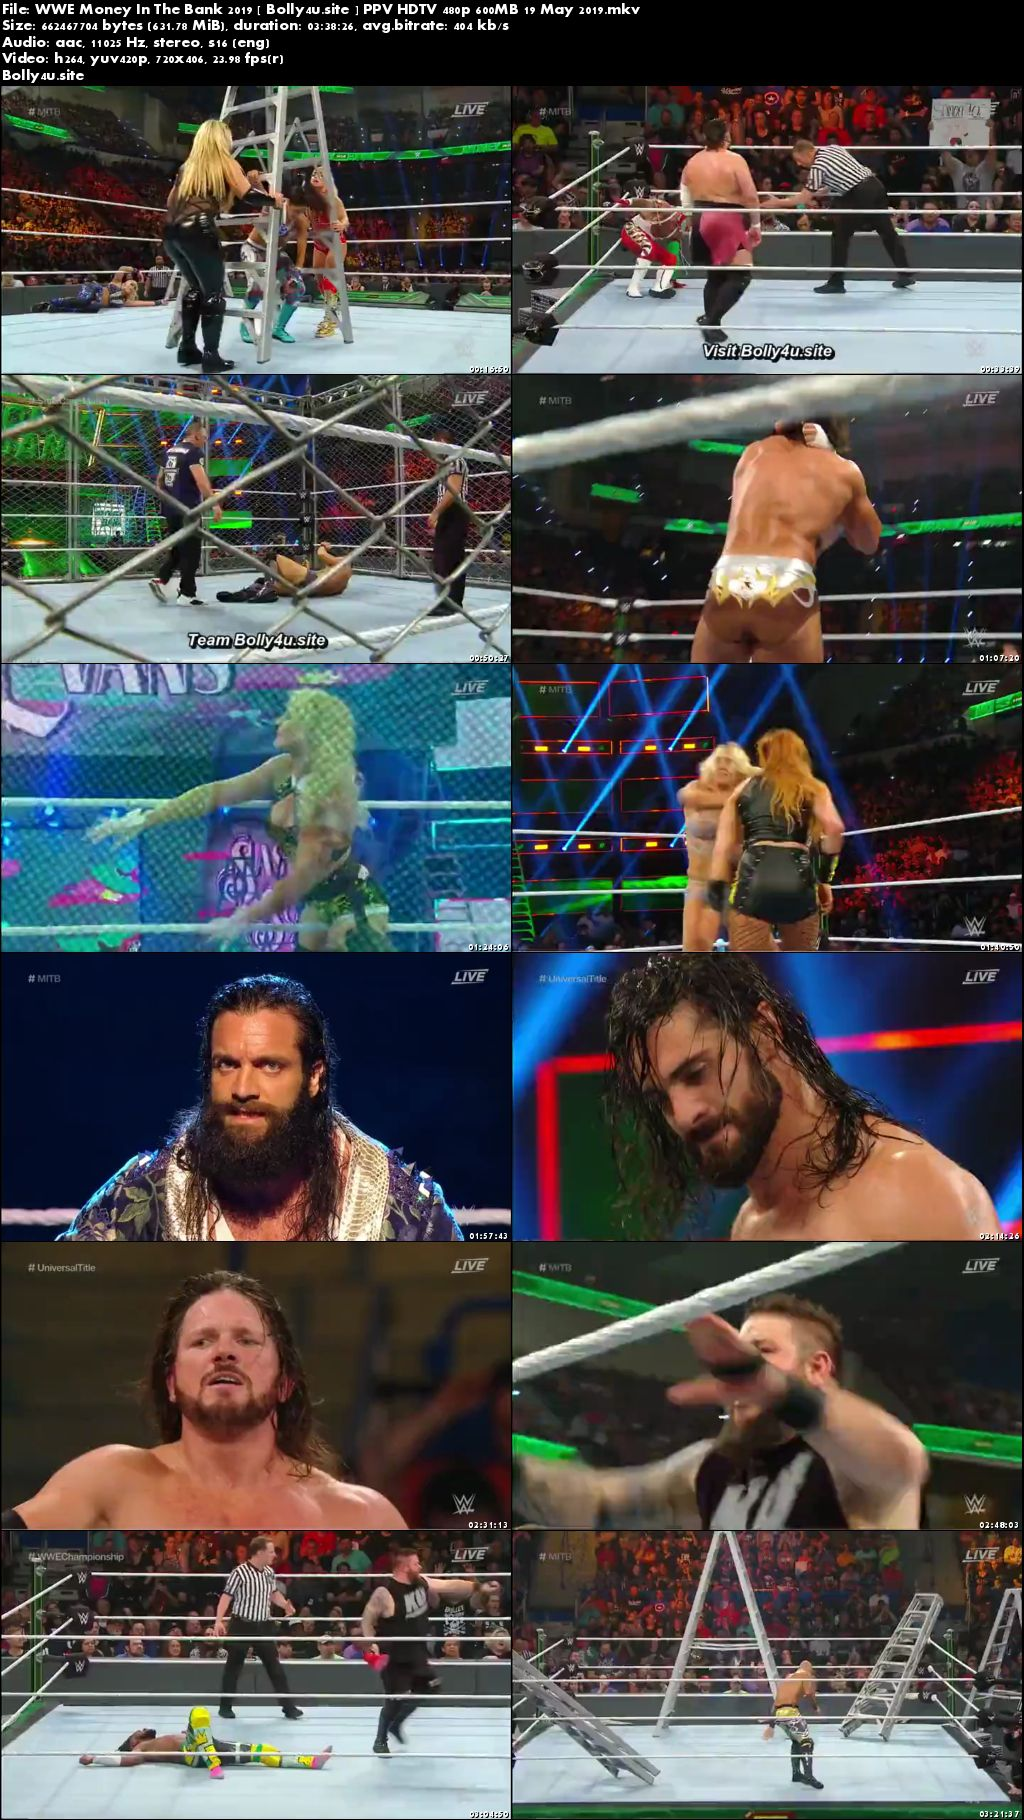 WWE Money In The Bank 2019 PPV HDTV 480p 600MB 19 May 2019 Download